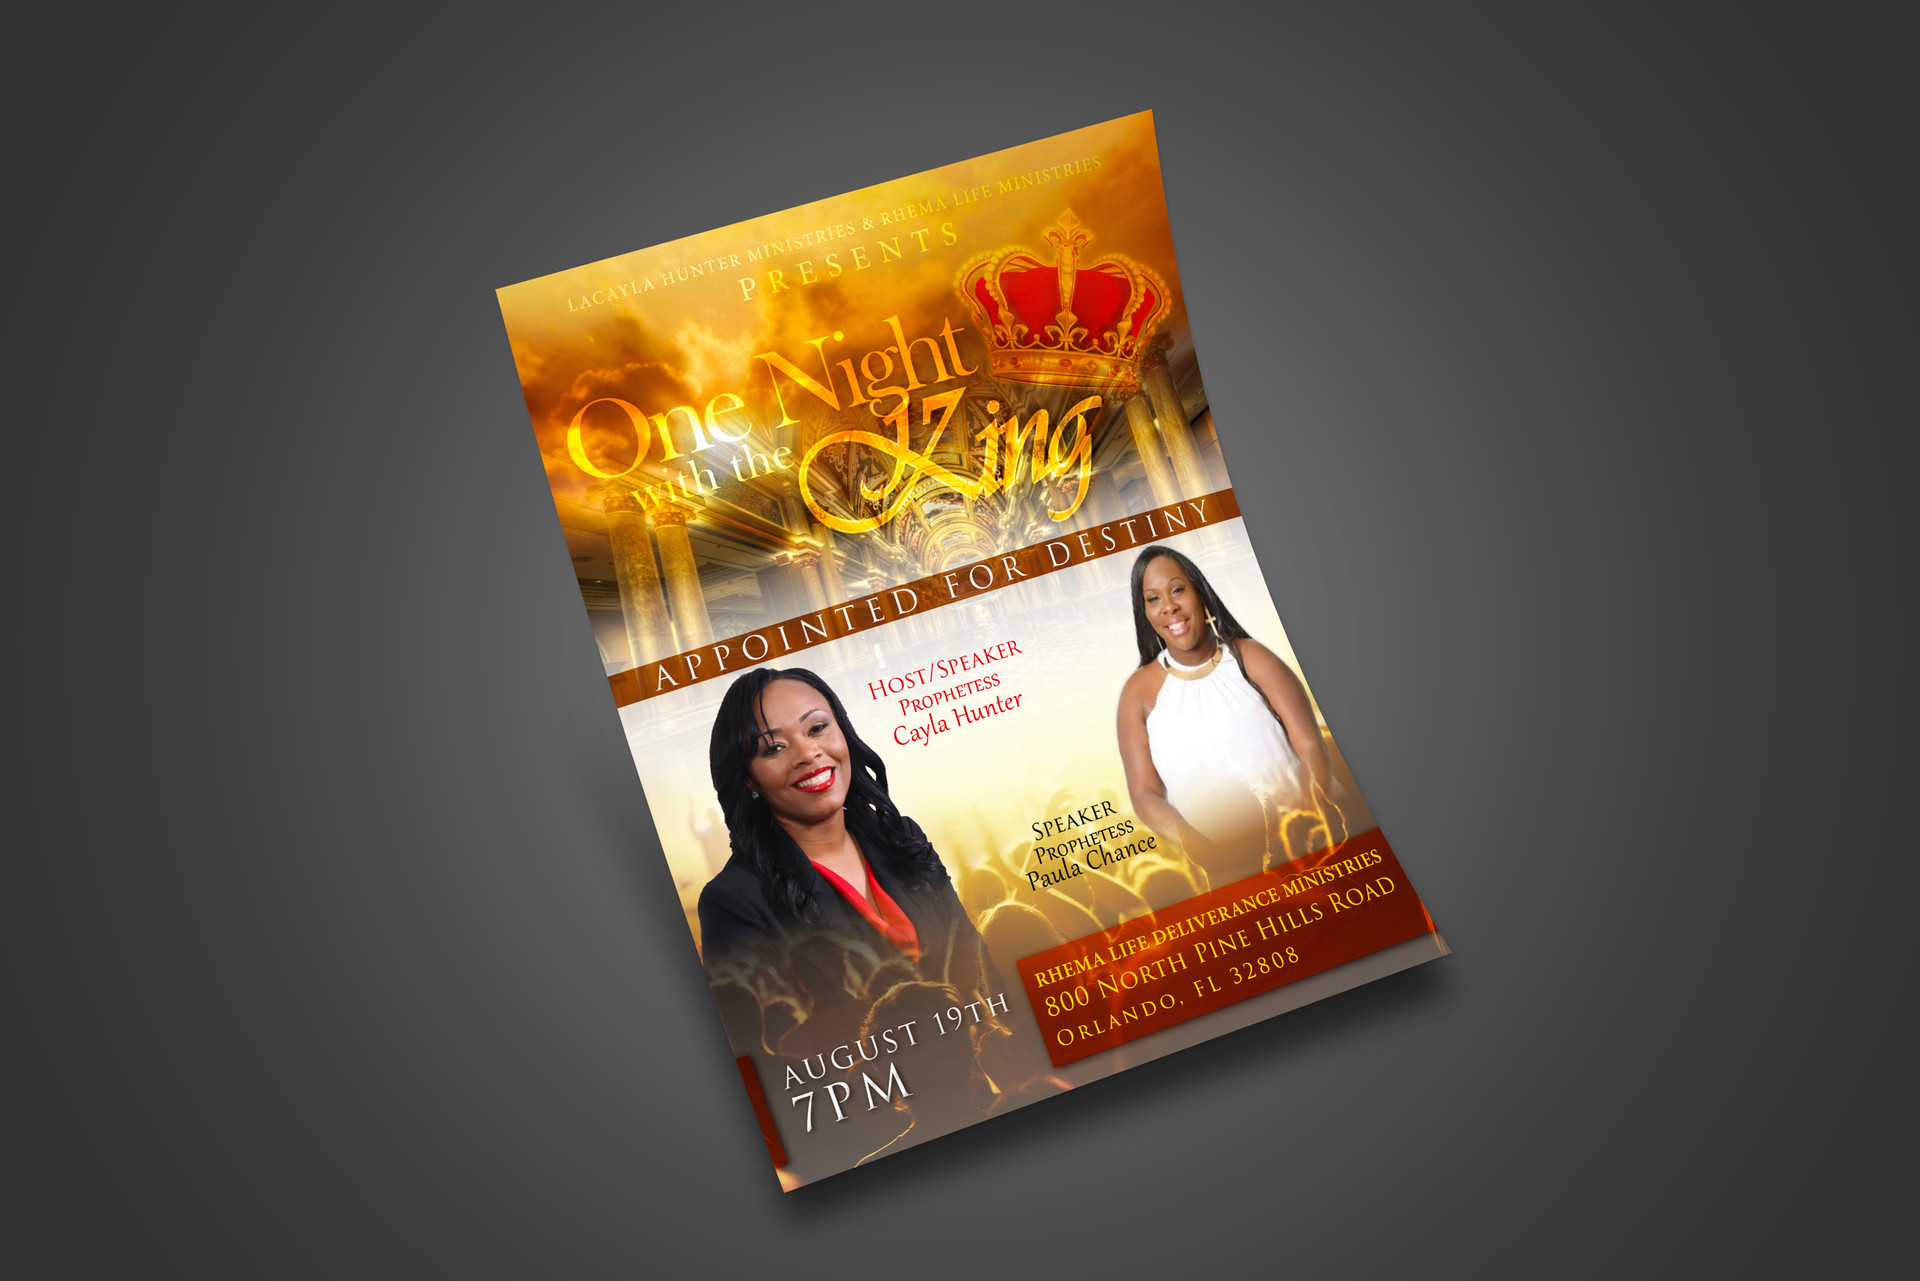 One Night with the King (Event Flyer)